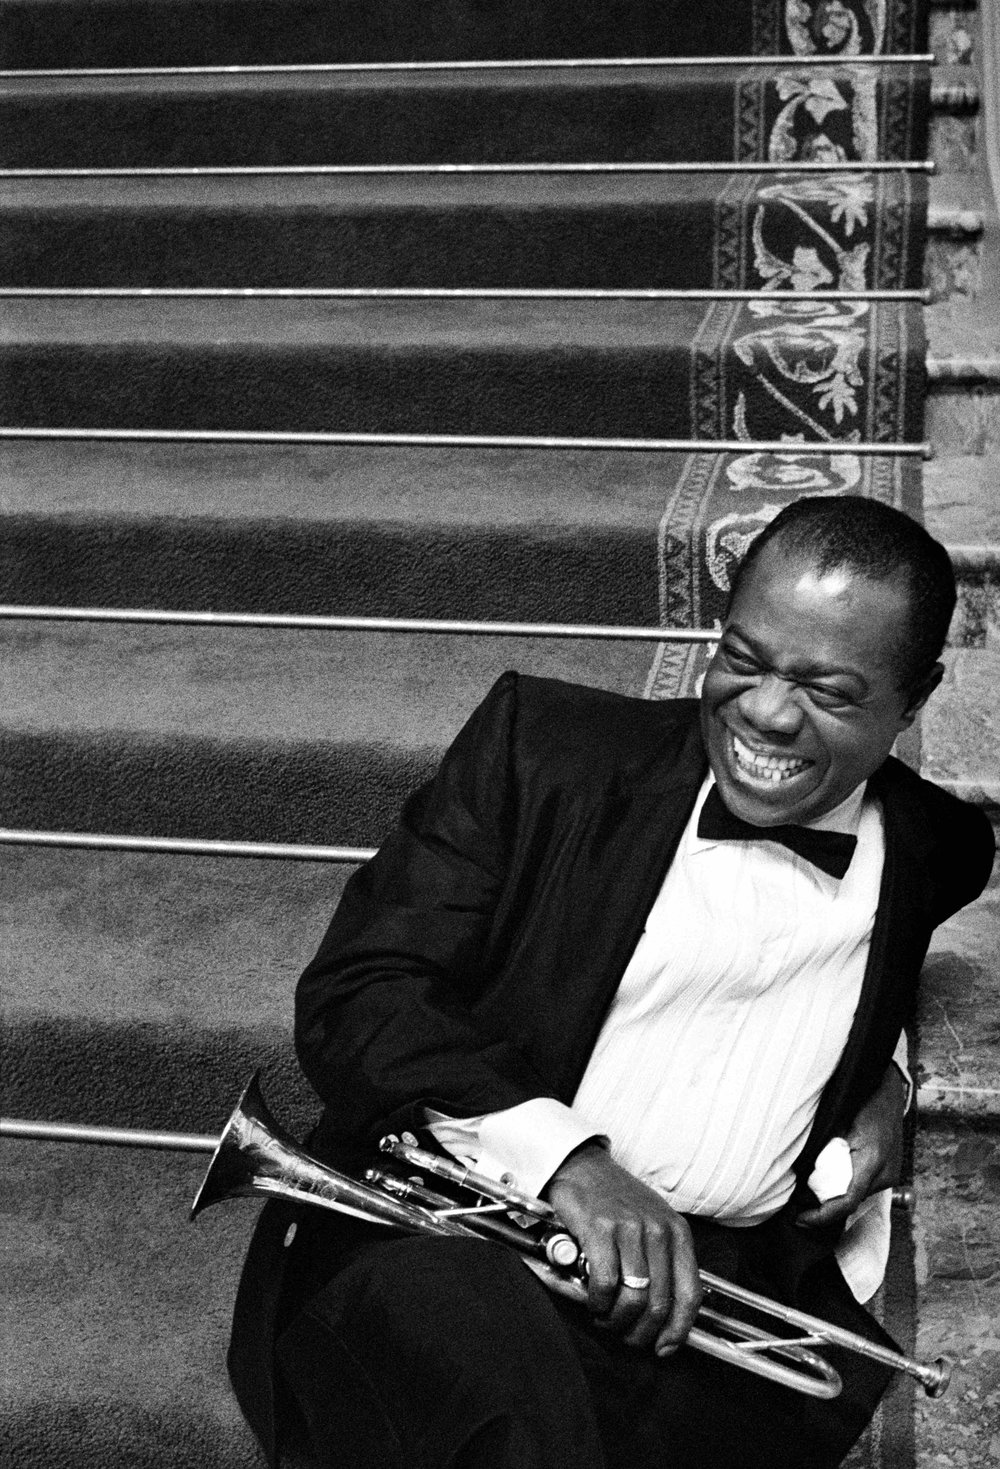 Louis Armstrong relaxing on the set of High Society, 1956